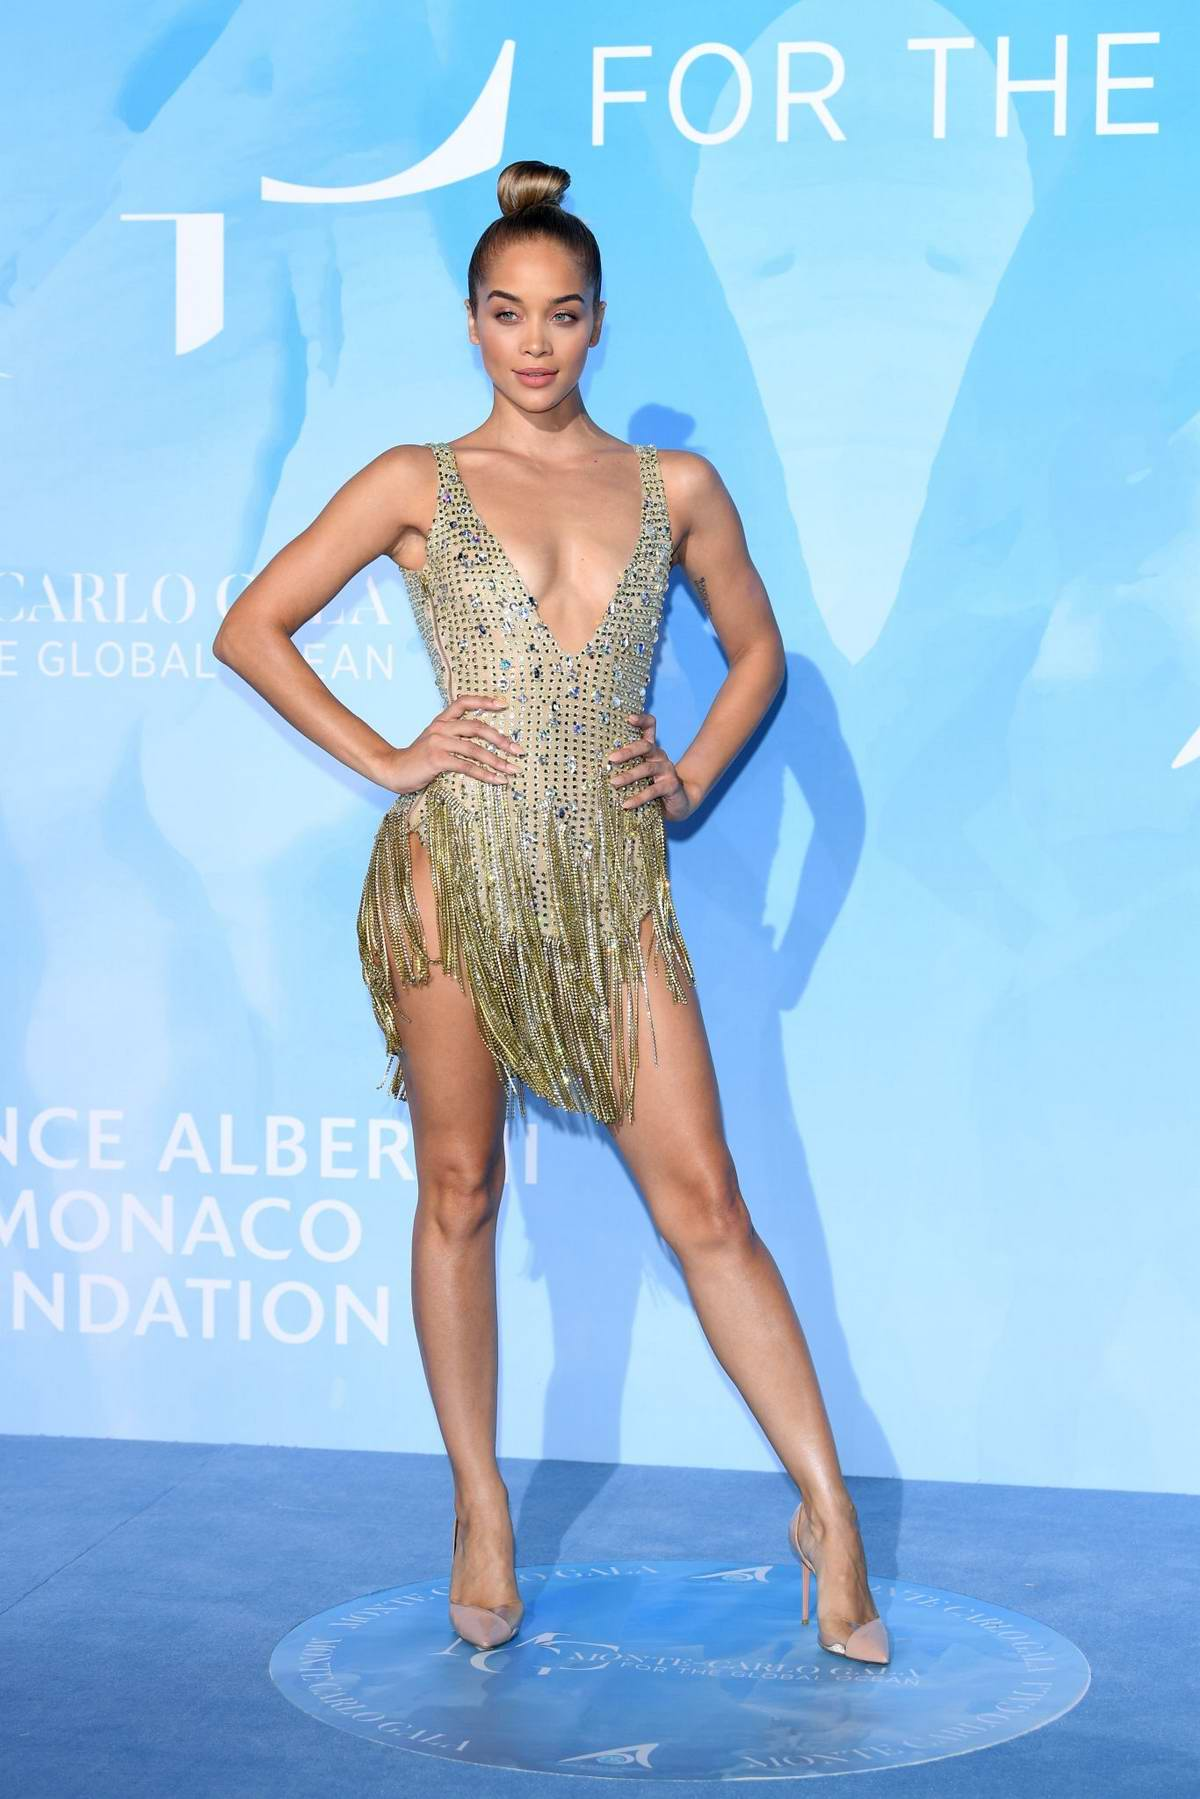 Jasmine Sanders attends the Gala for the Global Ocean in Monte Carlo, Monaco